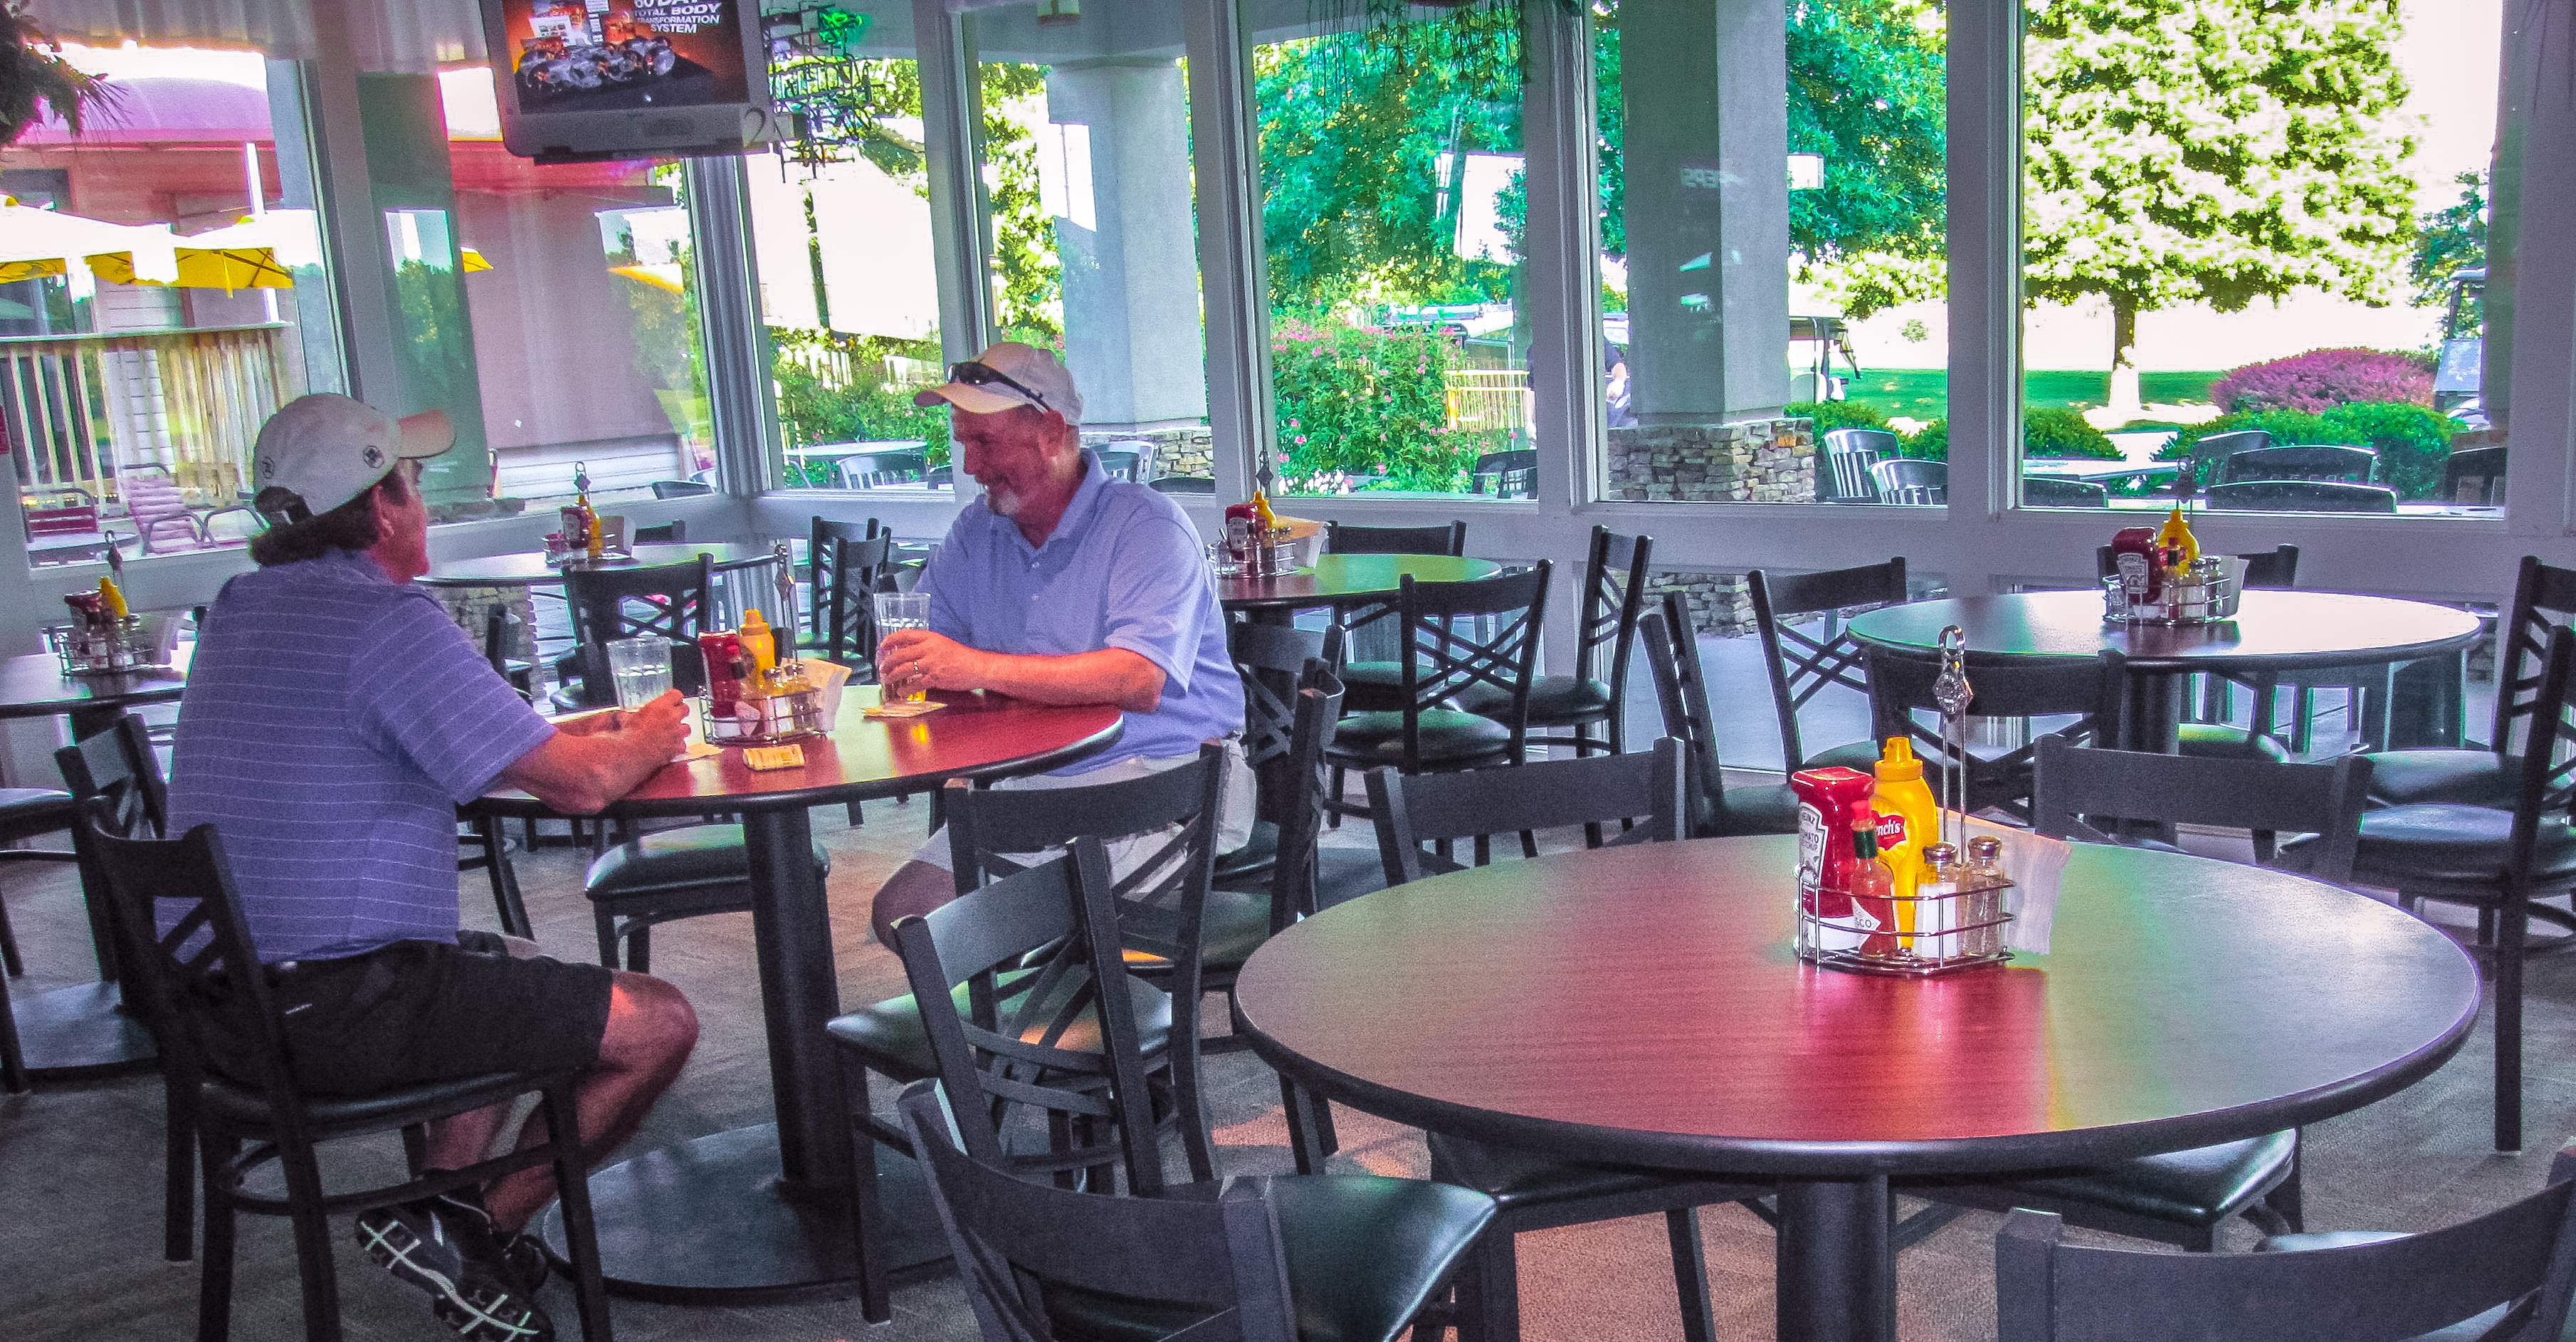 52. You can grab a burger and hang out with friends at the Kahite Pub and Grill